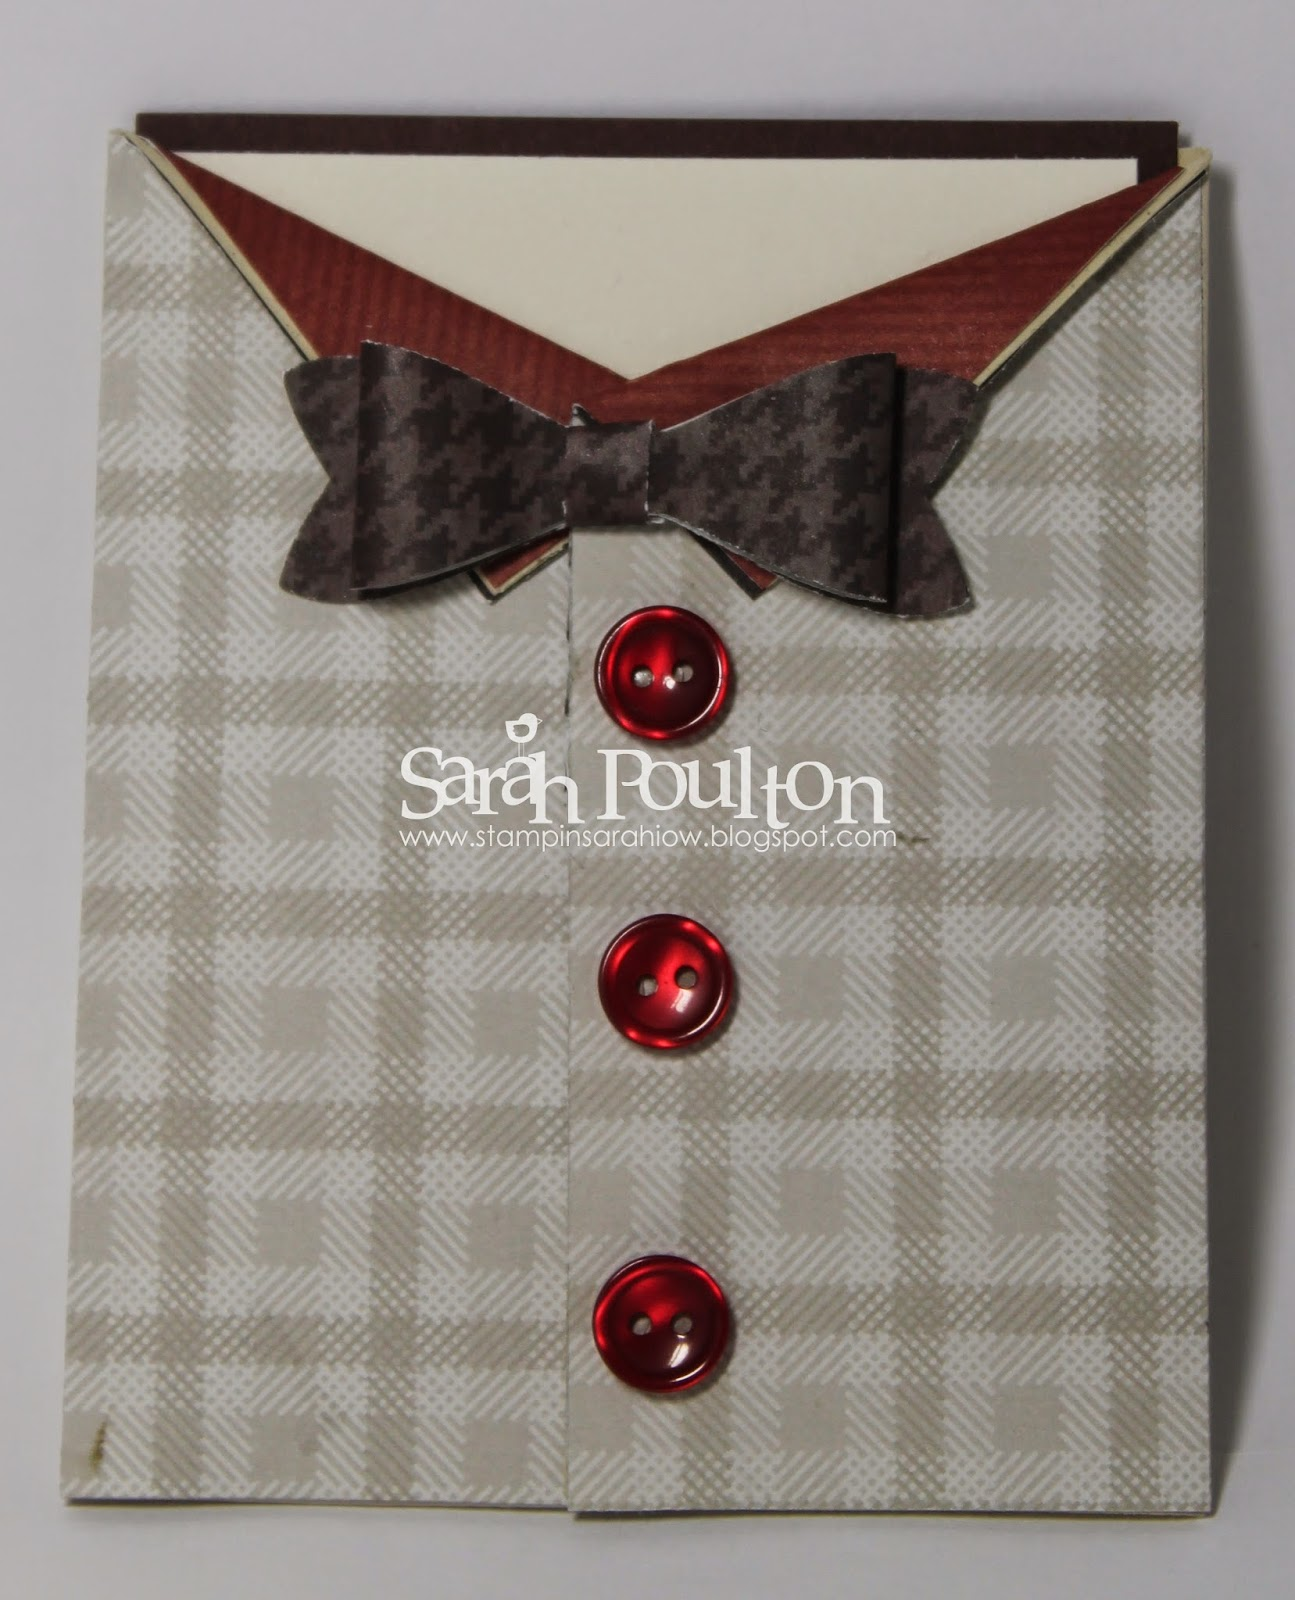 Shirt design card - The Inside Card Slips Out Of The Shirt Base I Used The Age Awareness Stamp Set And The Bravo Stamp Set To Create The Sentiment Stamped In Chocolate Chip